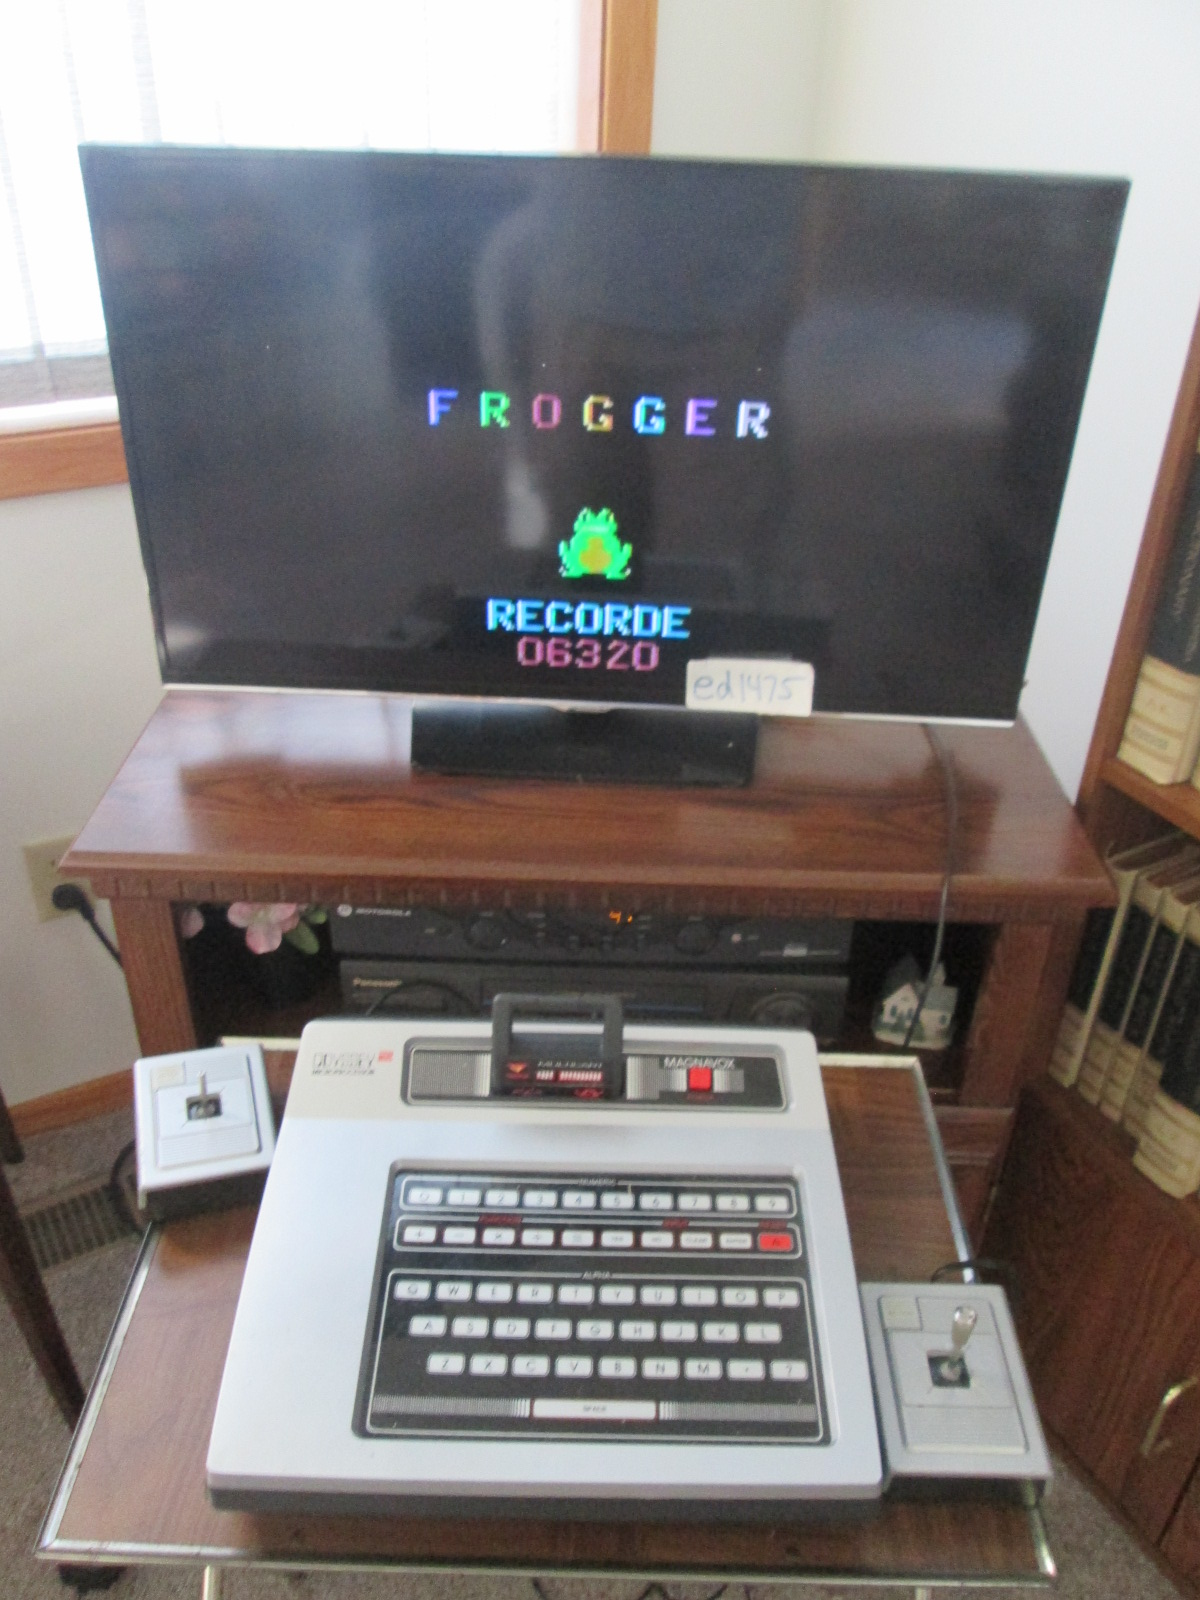 ed1475: Frogger (Odyssey 2 / Videopac) 6,320 points on 2016-10-07 19:04:55